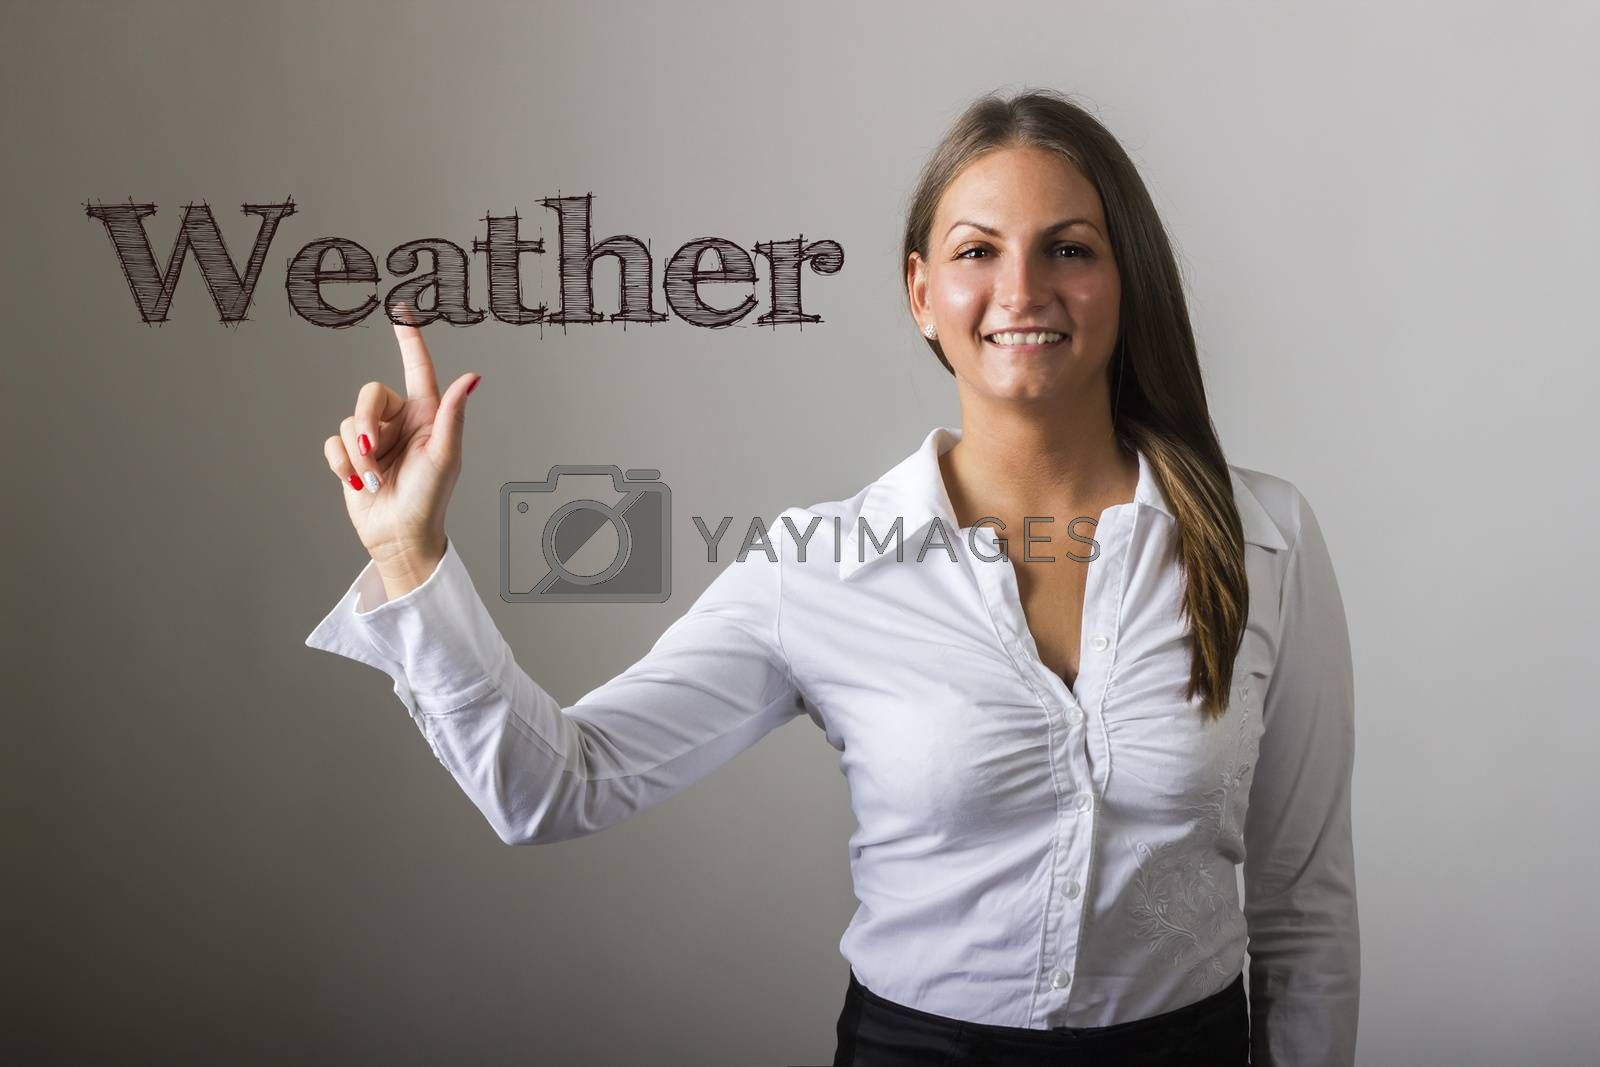 Weather - Beautiful girl touching text on transparent surface - horizontal image